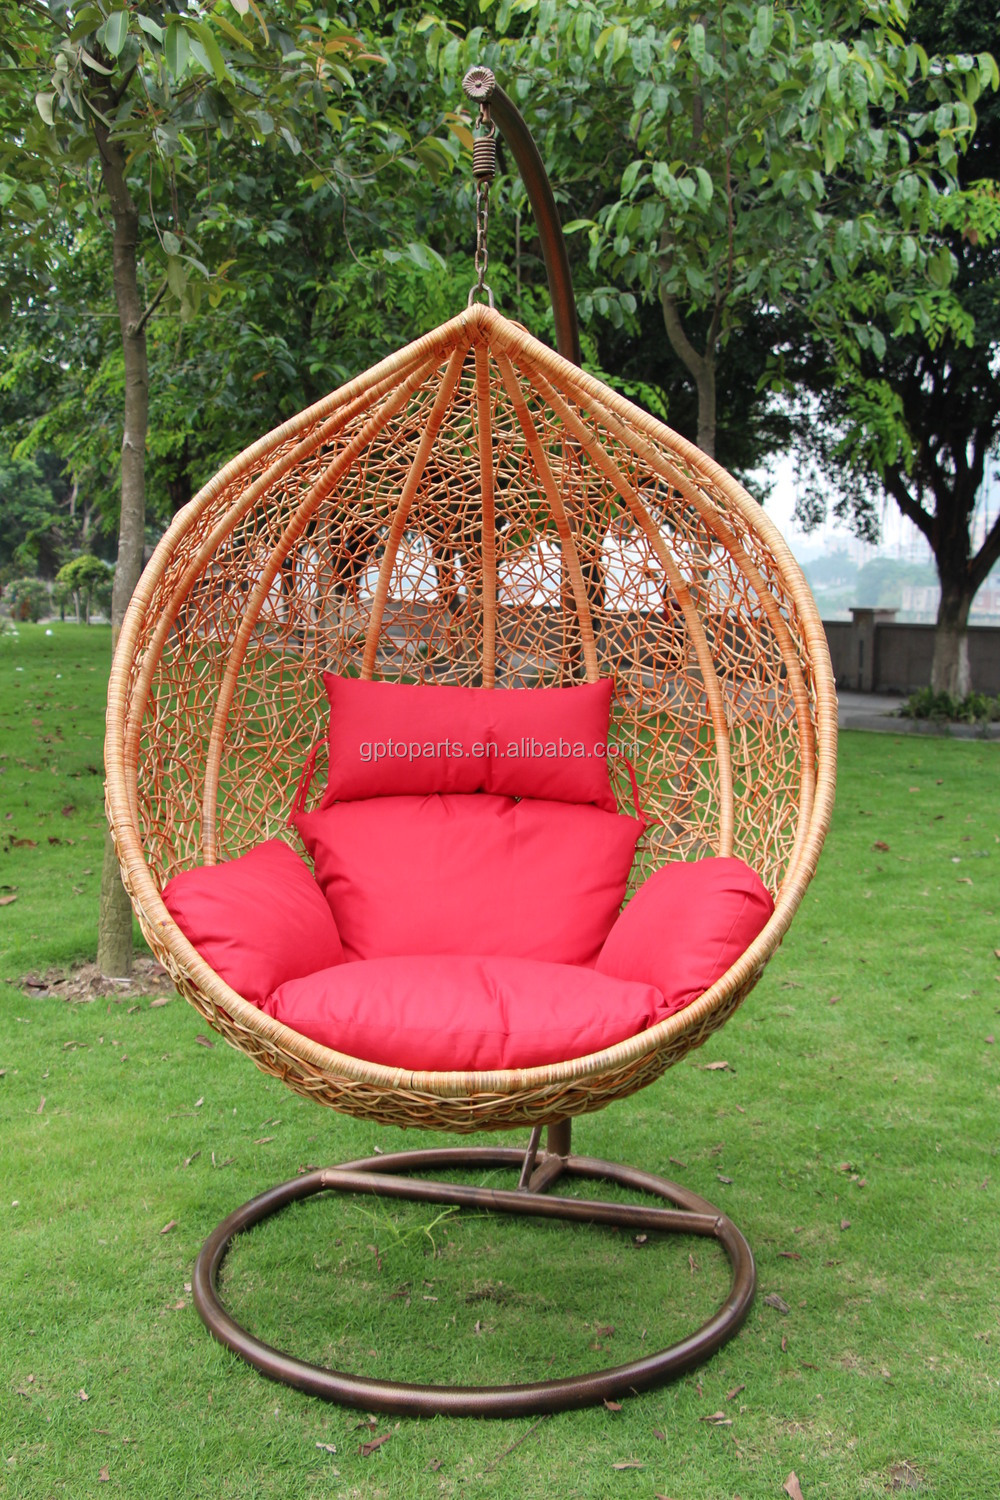 2014 best seller egg pod hanging chair swing chairs water drop shaped rattan basket view rattan. Black Bedroom Furniture Sets. Home Design Ideas